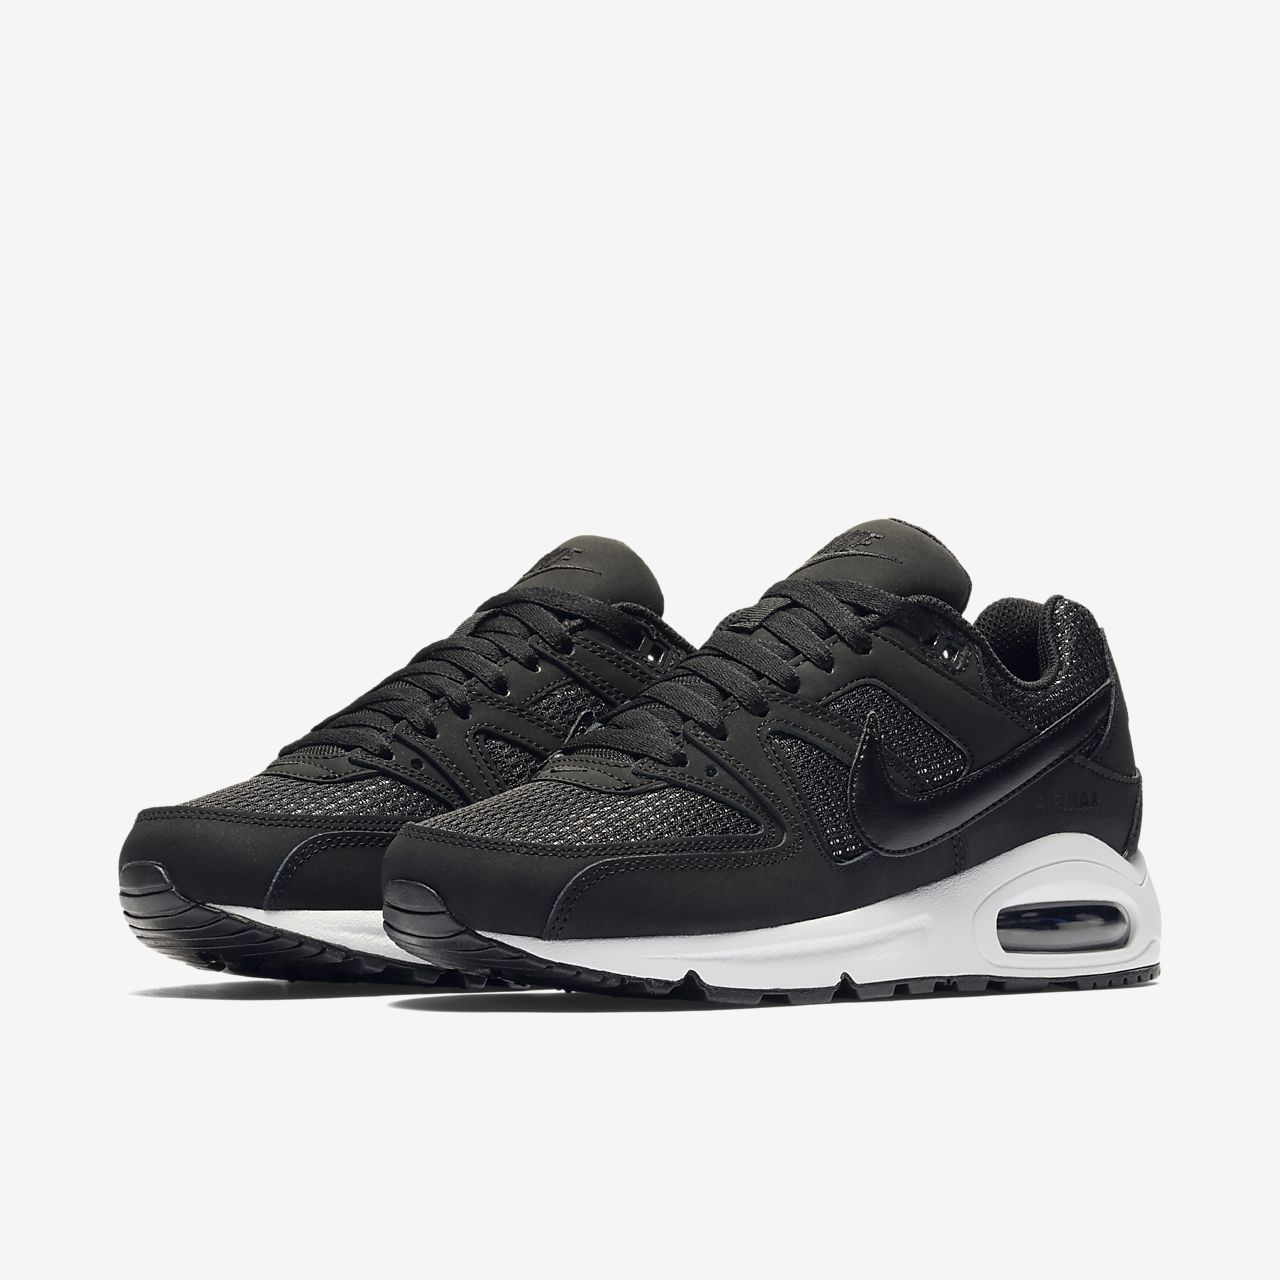 half off 053a3 0645c ... Nike Air Max Command Women s Shoe